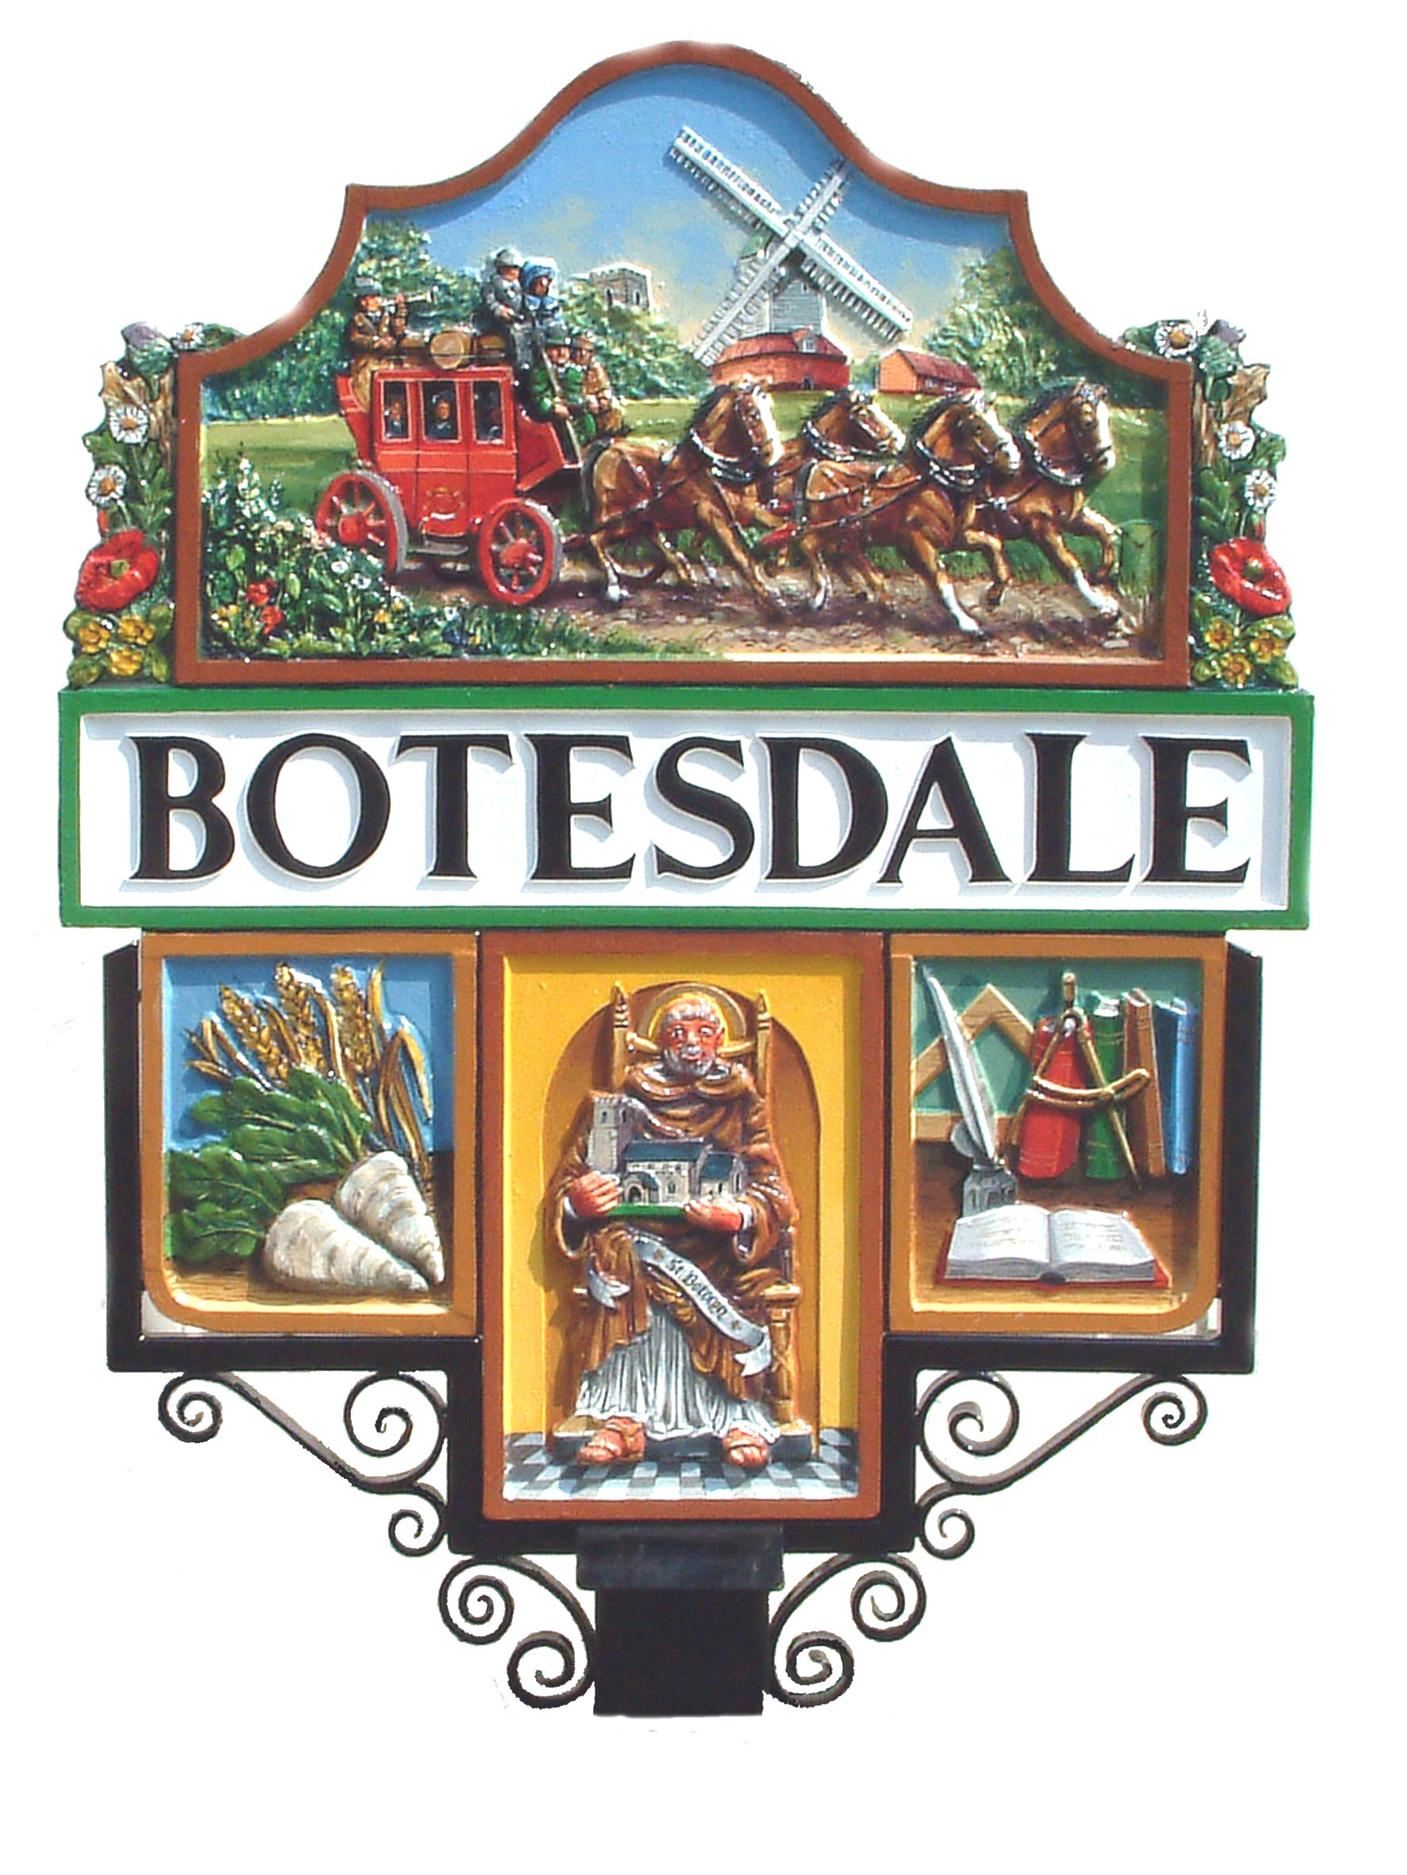 Botesdale Parish Council